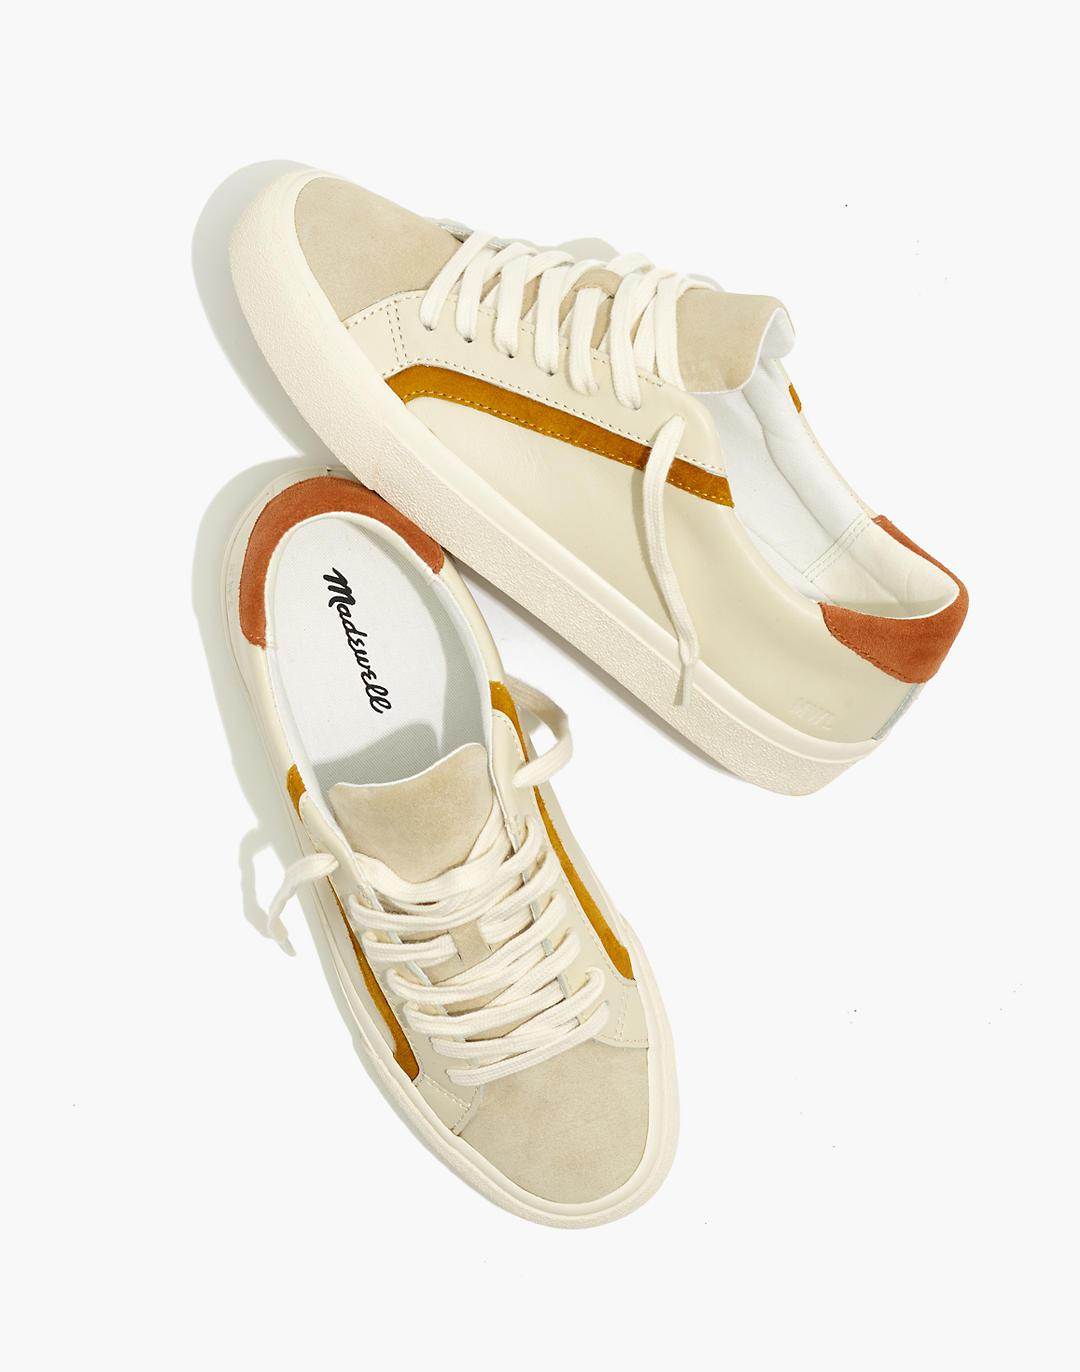 Sidewalk Low-Top Sneakers in Colorblock Leather and Suede